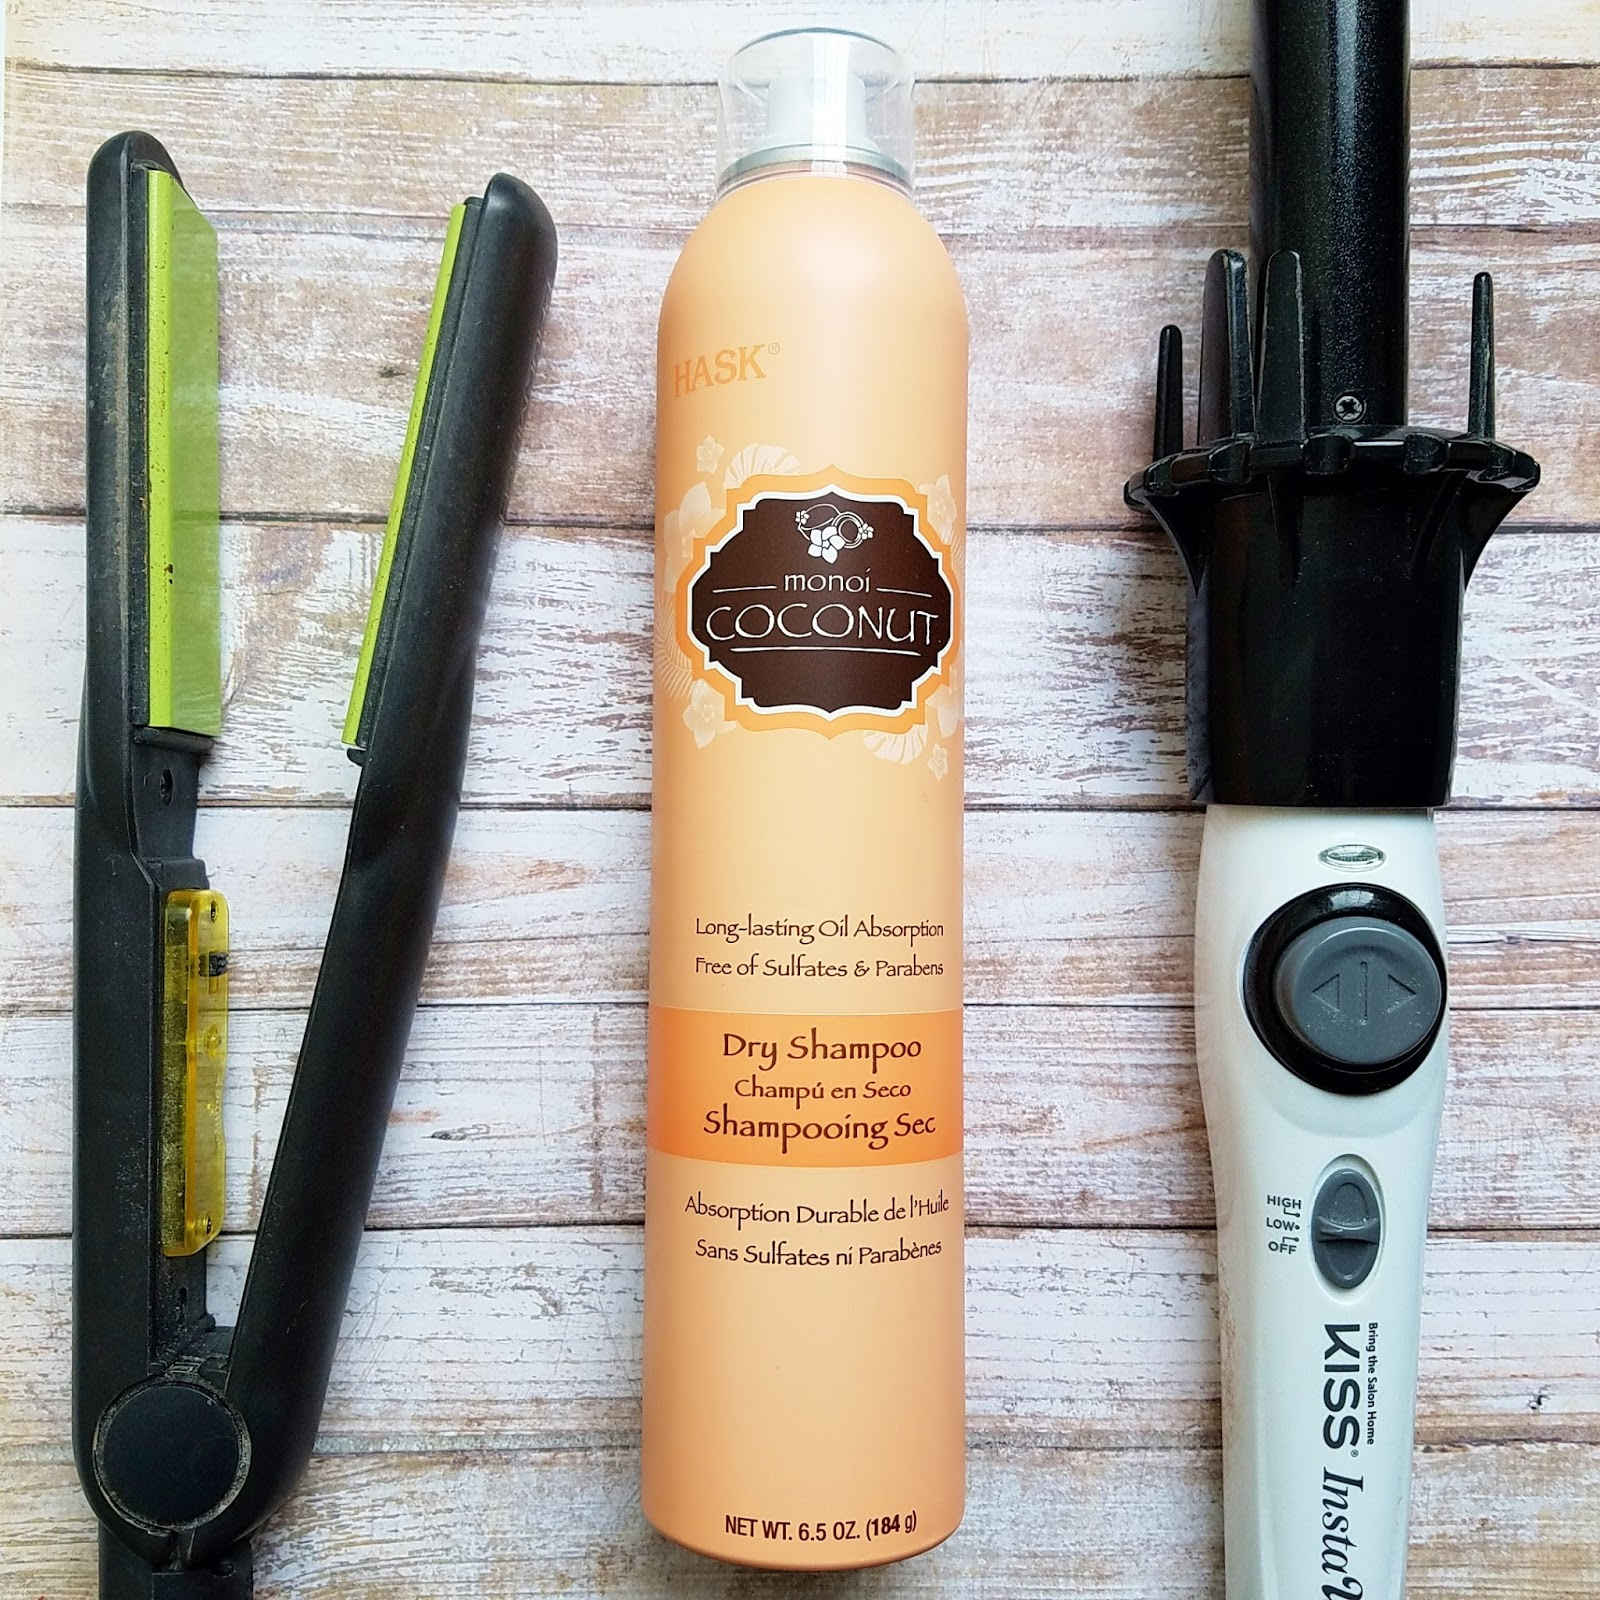 Dry shampoo, blogger review, hair care